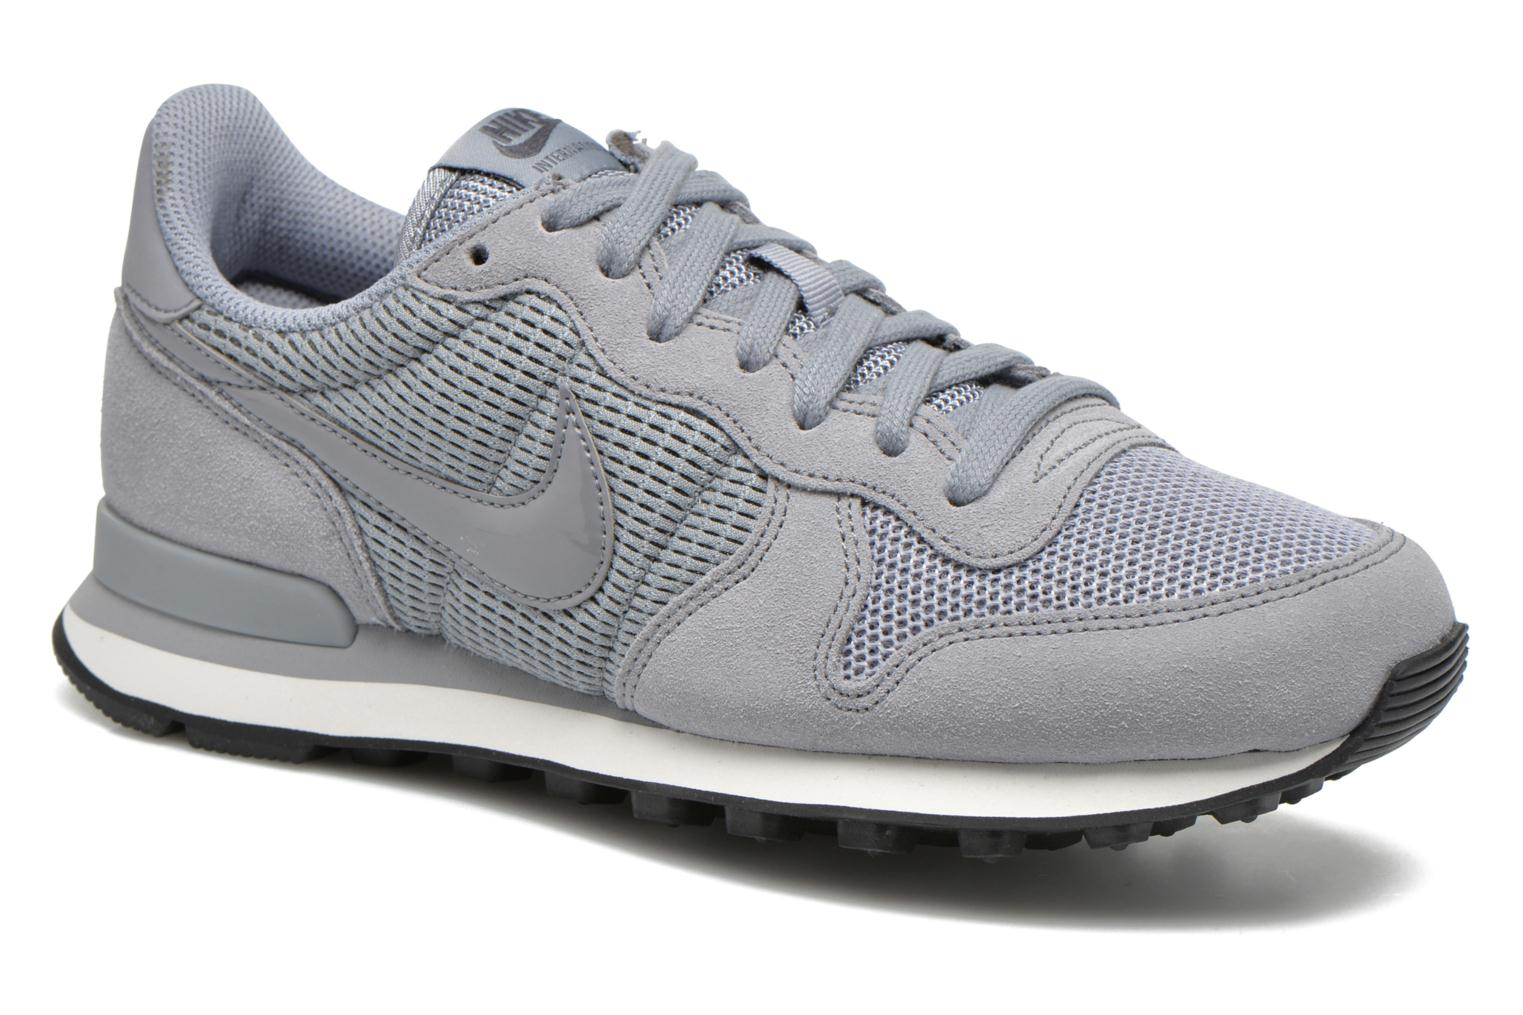 Wmns Internationalist Stealth/Stlth-Drk Gry-Smmt Wht